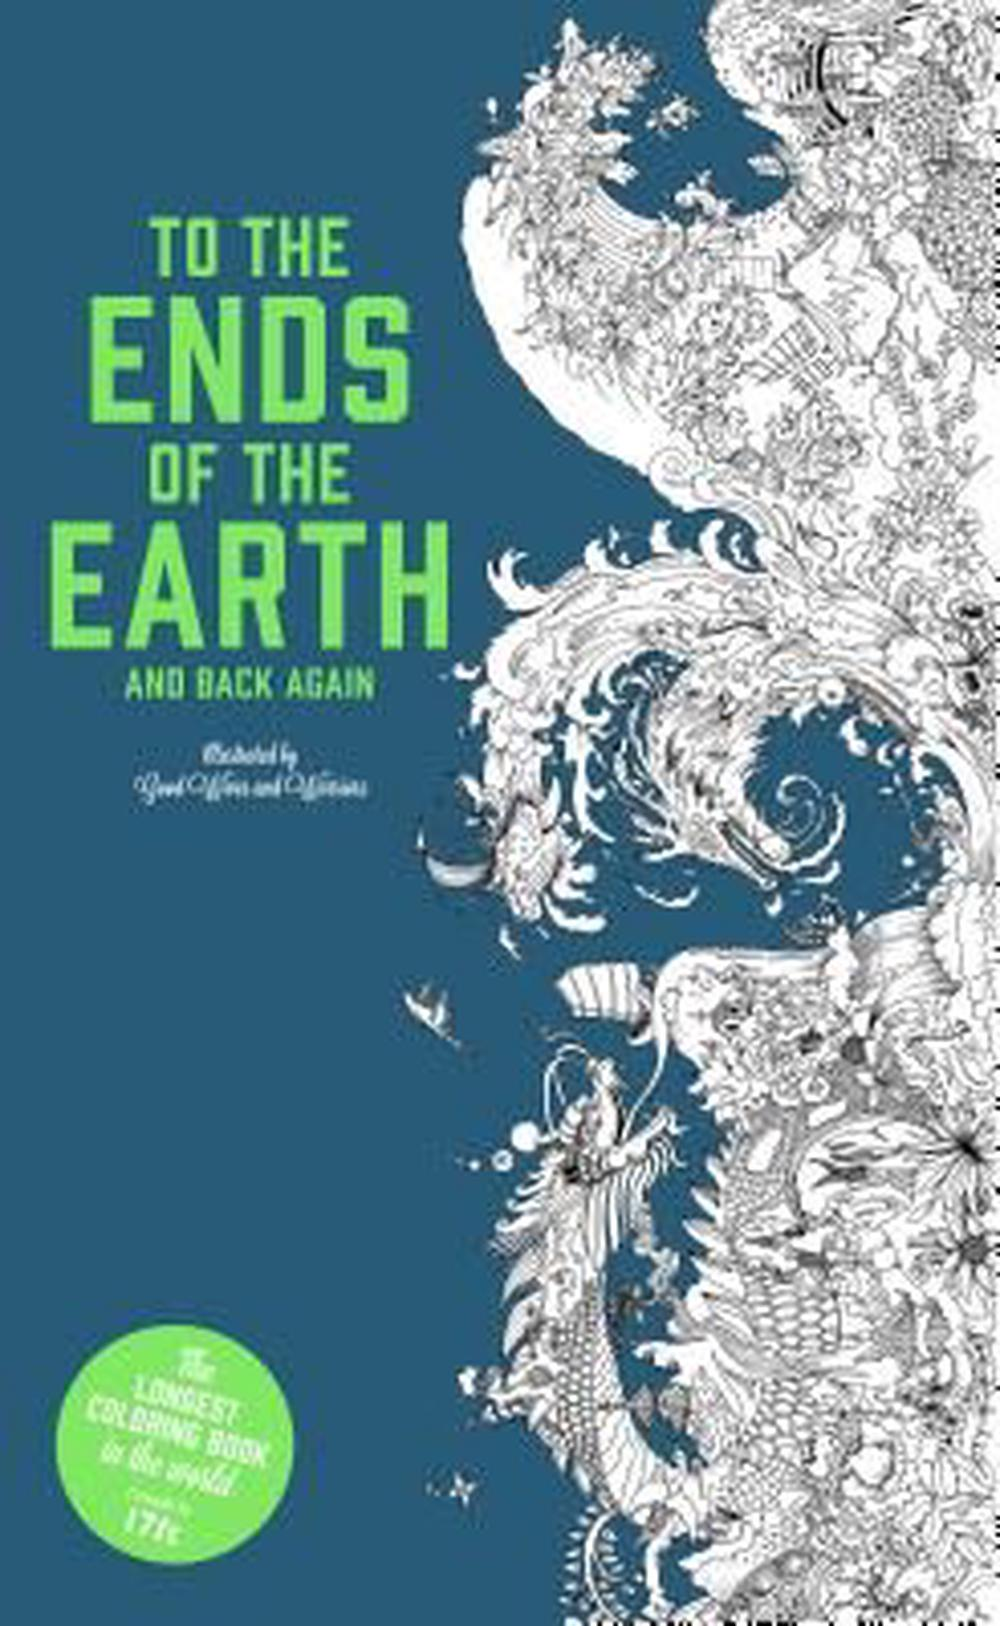 To the Ends of the Earth and Back AgainThe Longest Coloring Book in the World by Good Wives and Warriors, ISBN: 9781786270368